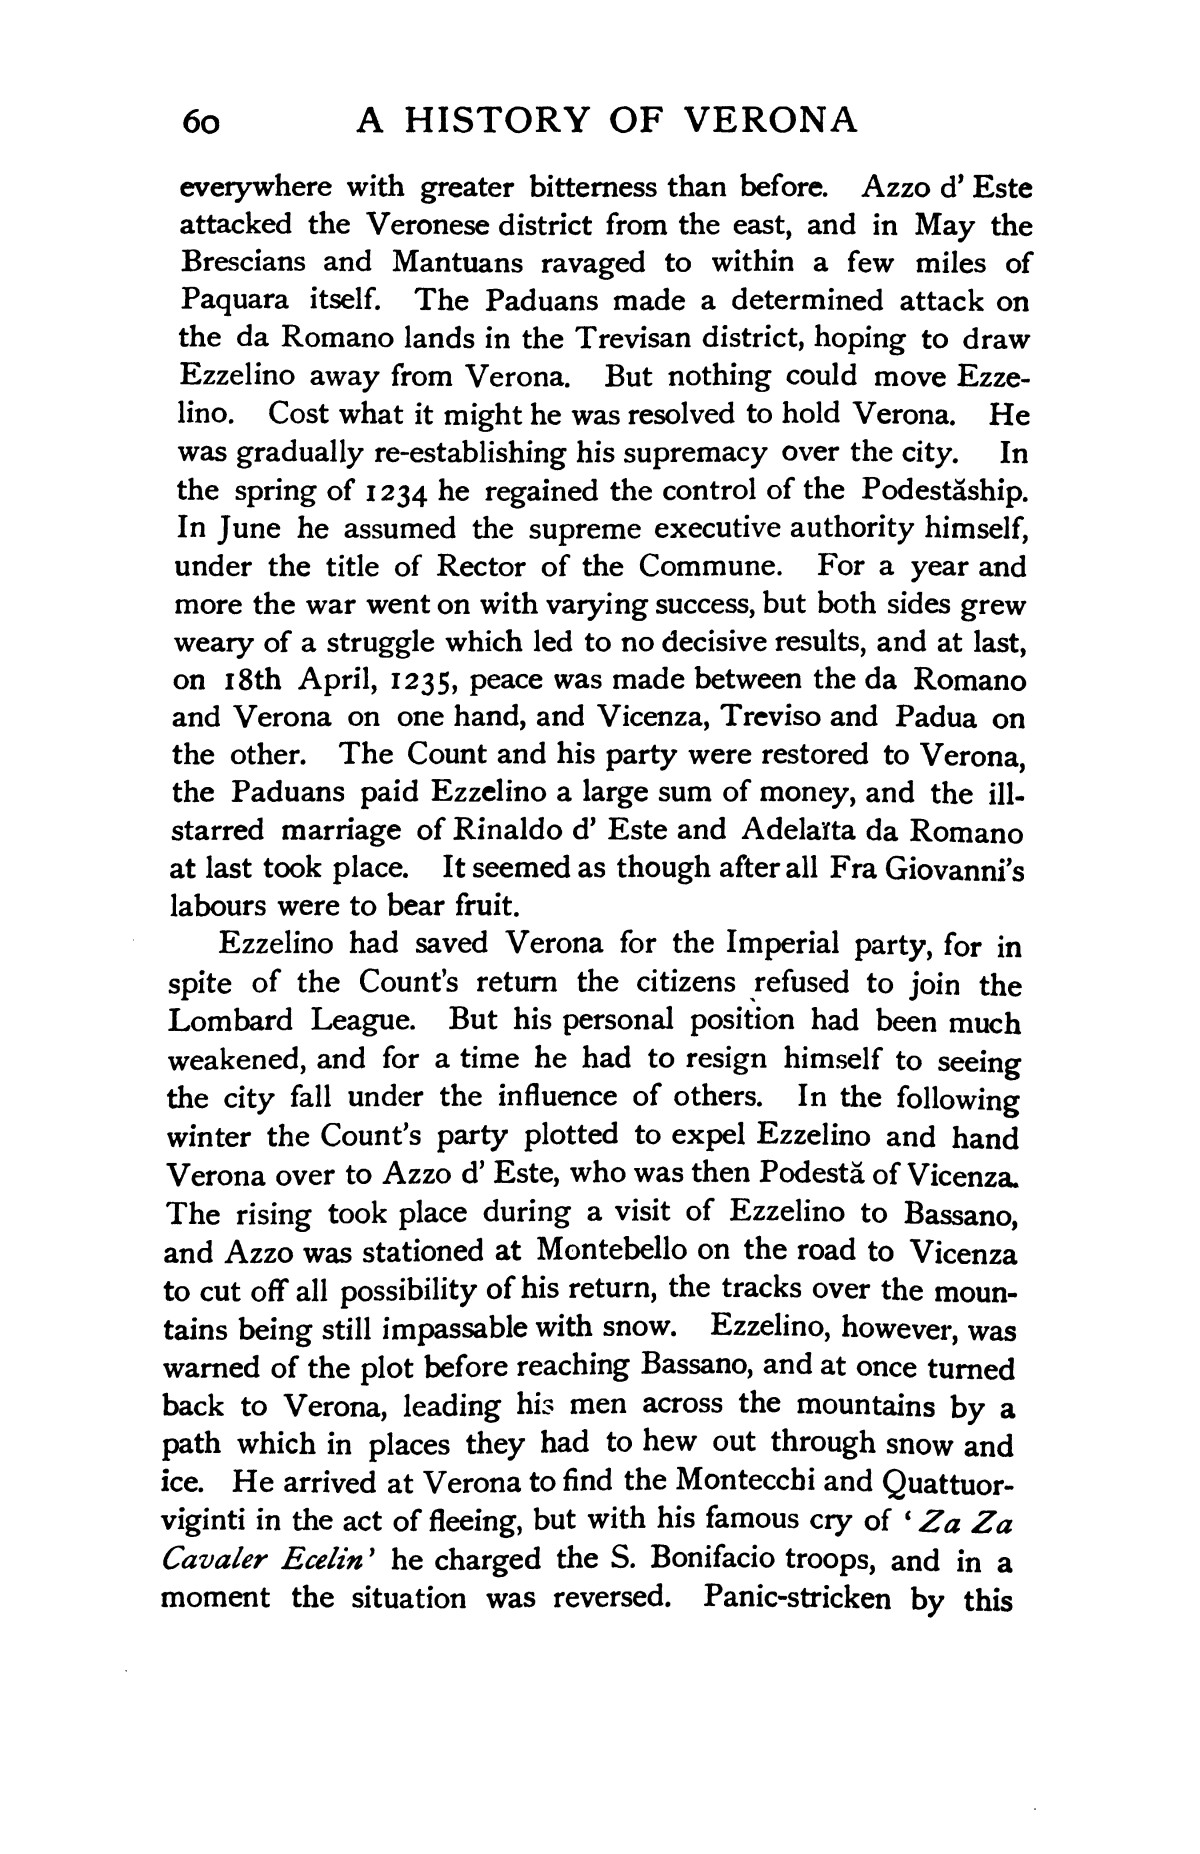 A history of Verona, by A. M. Allen.  Edited by Edward Armstrong, with twenty illustrations and three maps.                                                                                                      [Sequence #]: 78 of 493